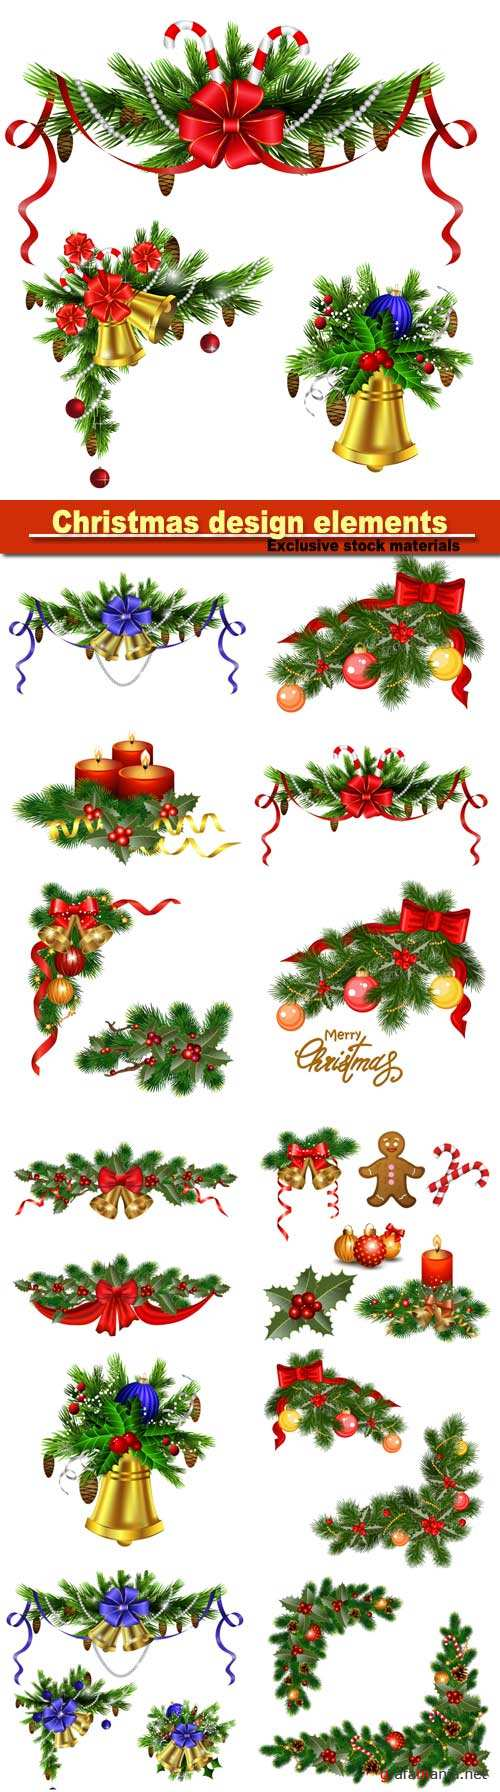 Christmas design elements, background with fir tree, holly and decorative elements